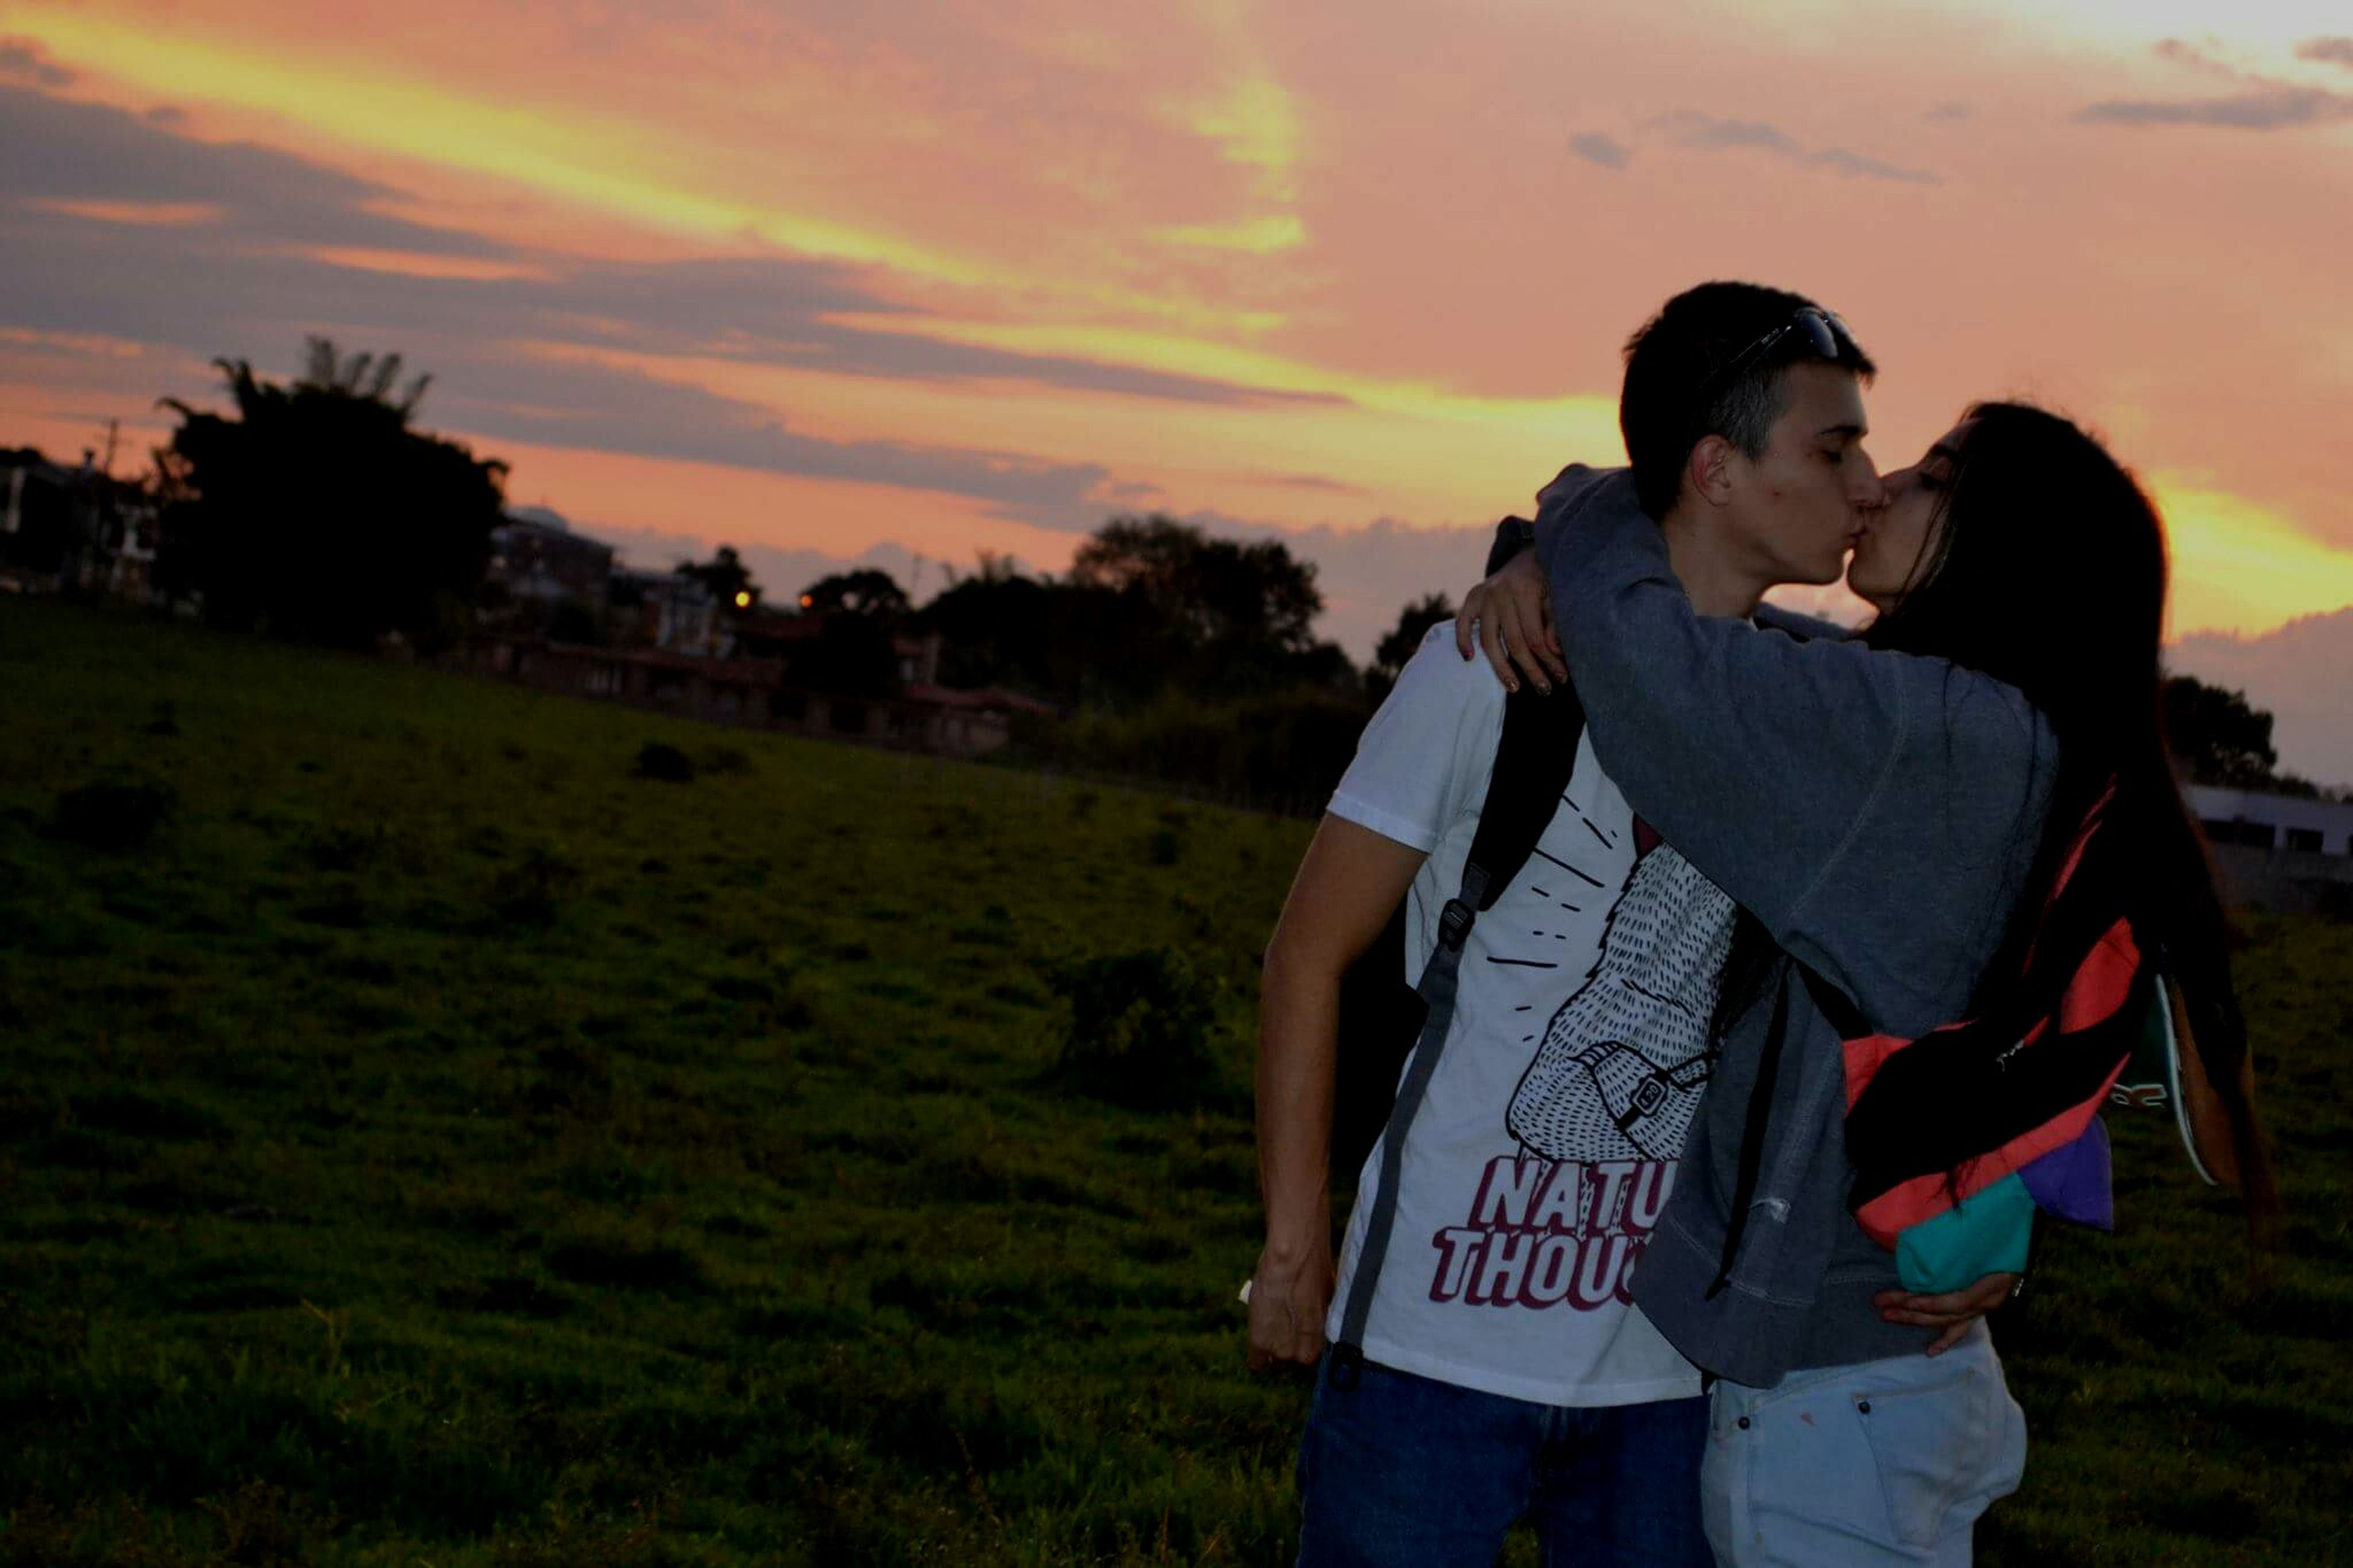 love, two people, couple - relationship, romance, heterosexual couple, sunset, young adult, sky, grass, happiness, togetherness, men, smiling, bonding, lifestyles, young women, cloud - sky, beauty, outdoors, adults only, adult, people, real people, beauty in nature, nature